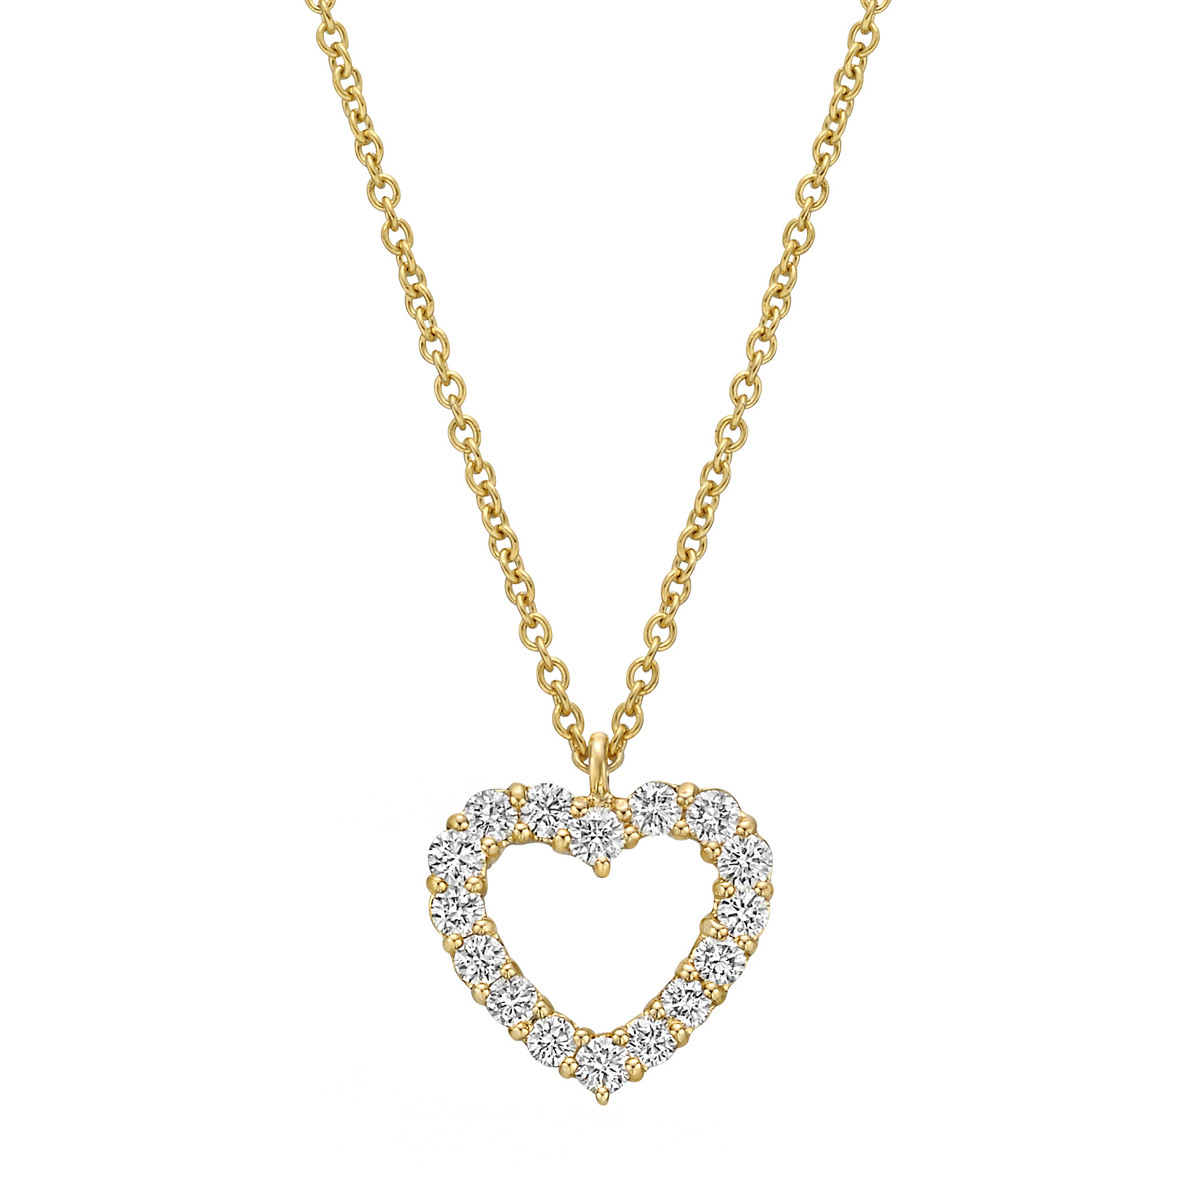 18k Yellow Gold & Diamond Heart Pendant